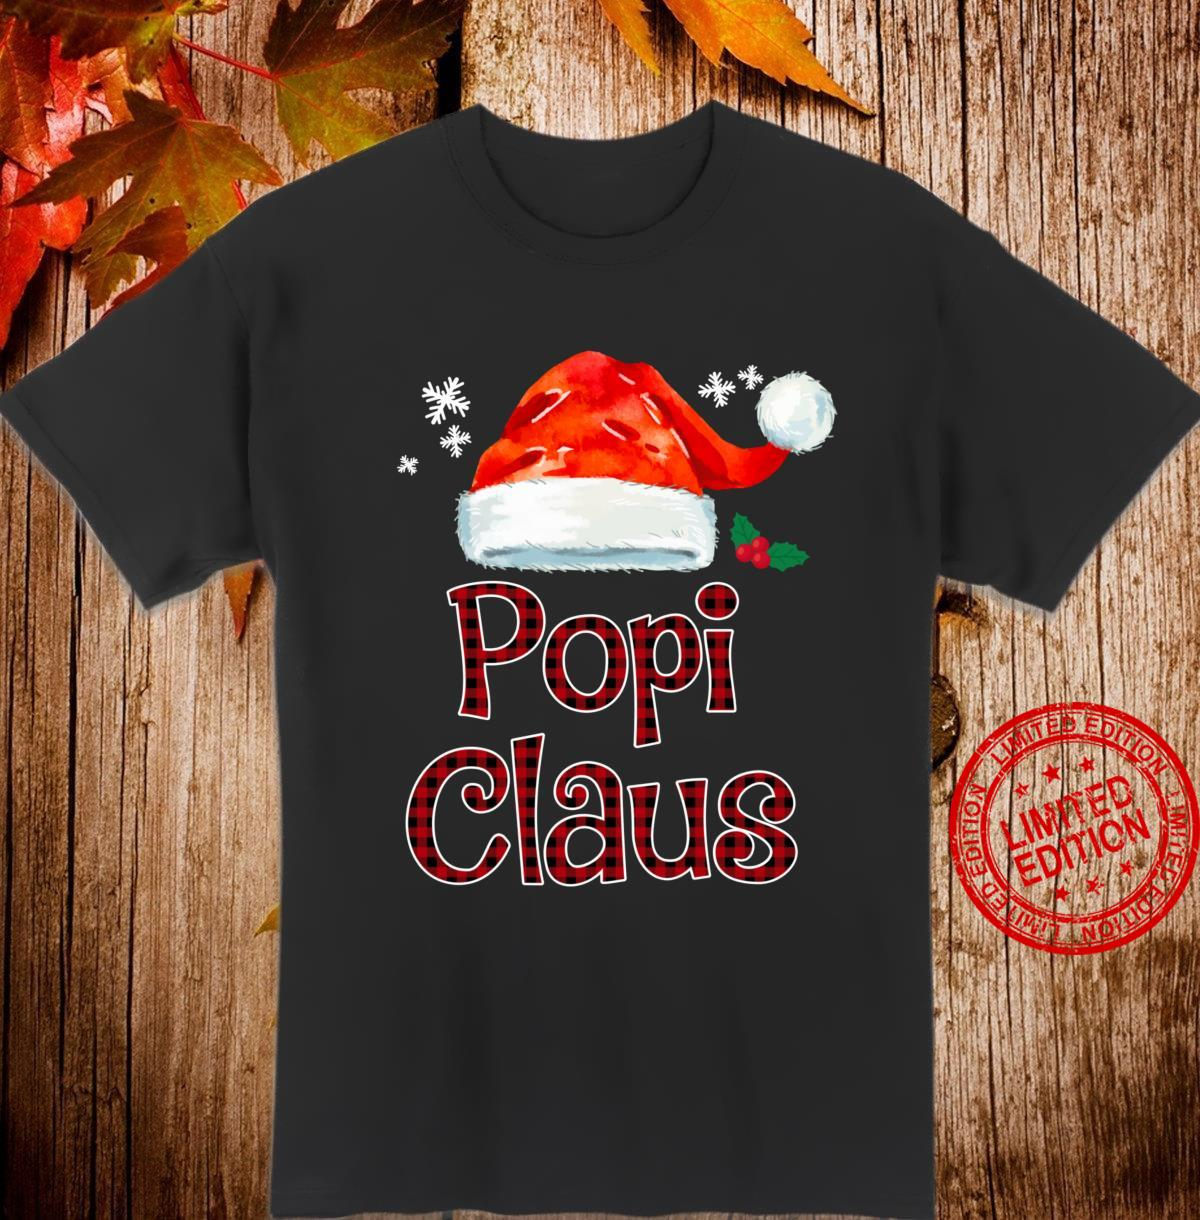 Popi Claus Christmas Pajama Family Matching Xmas Shirt